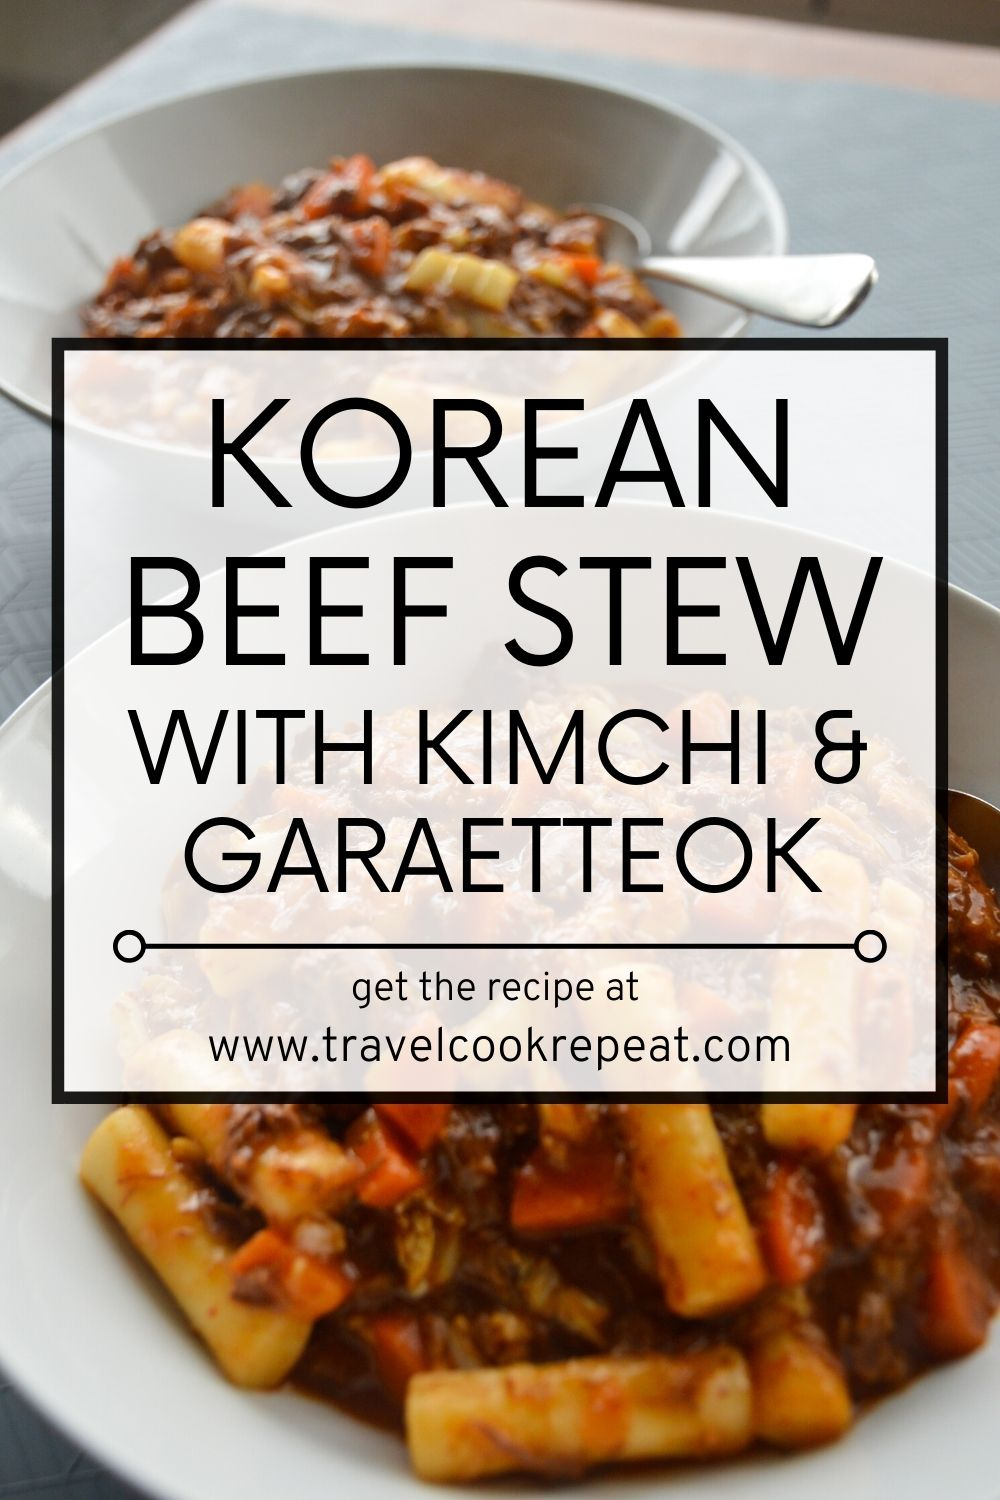 Korean Beef Stew with Rice Cakes and Kimchi